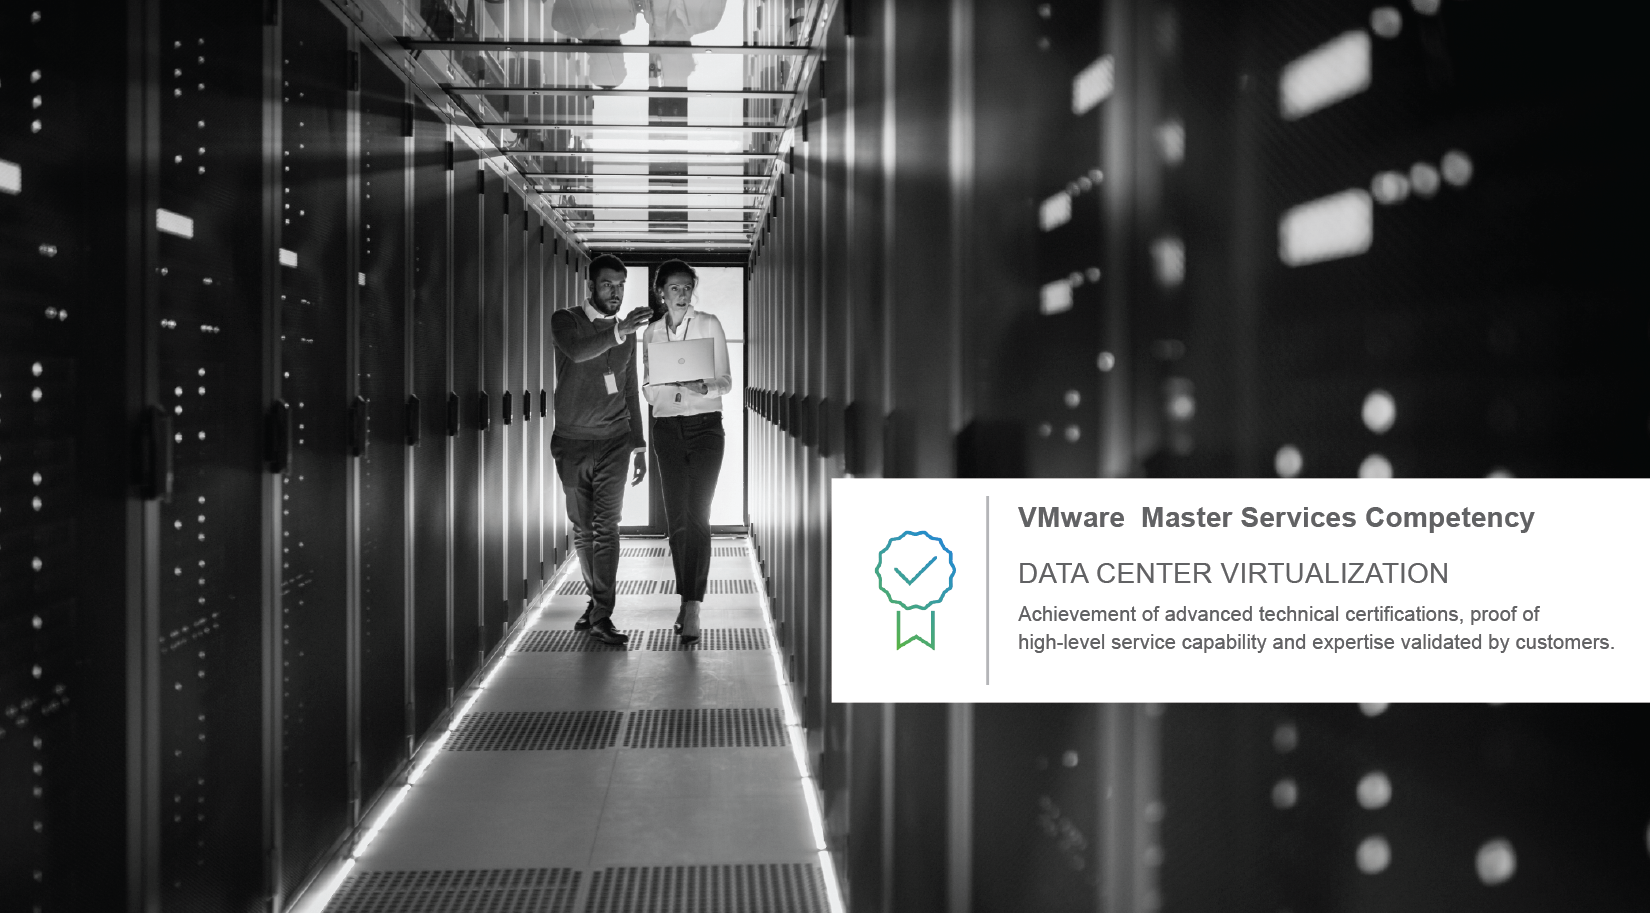 TBS Achieves VMware Master Service Competency in Data Center Virtualization